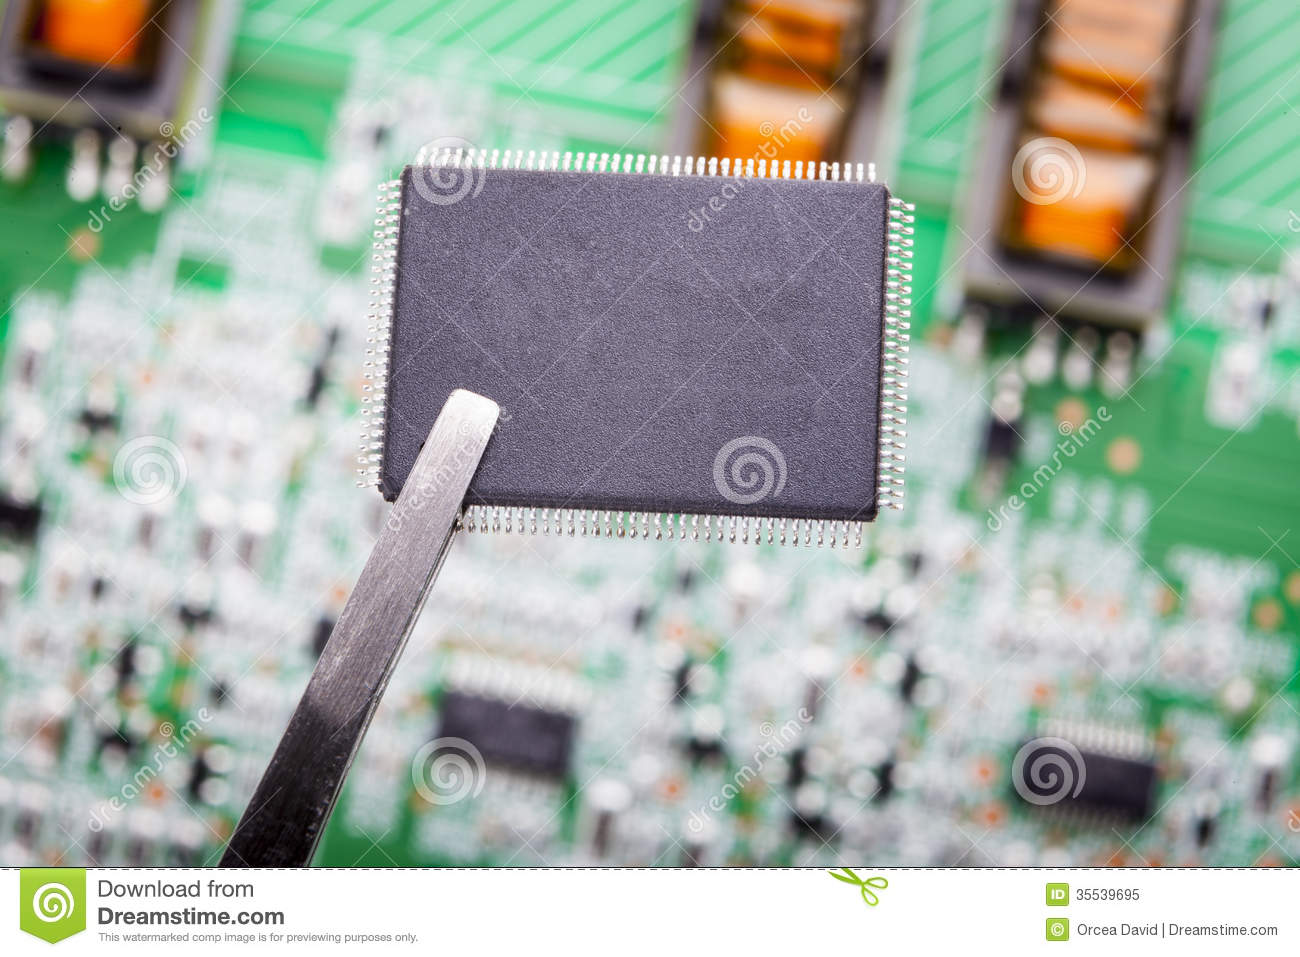 micro chip Microchip, llc serving commercial clients in the greater acadiana area for over 10 years providing services such as tech support, virus removal, email and web hosting, spam filtering, vpn, custom application development, web application development, server replication 337-255-5112.